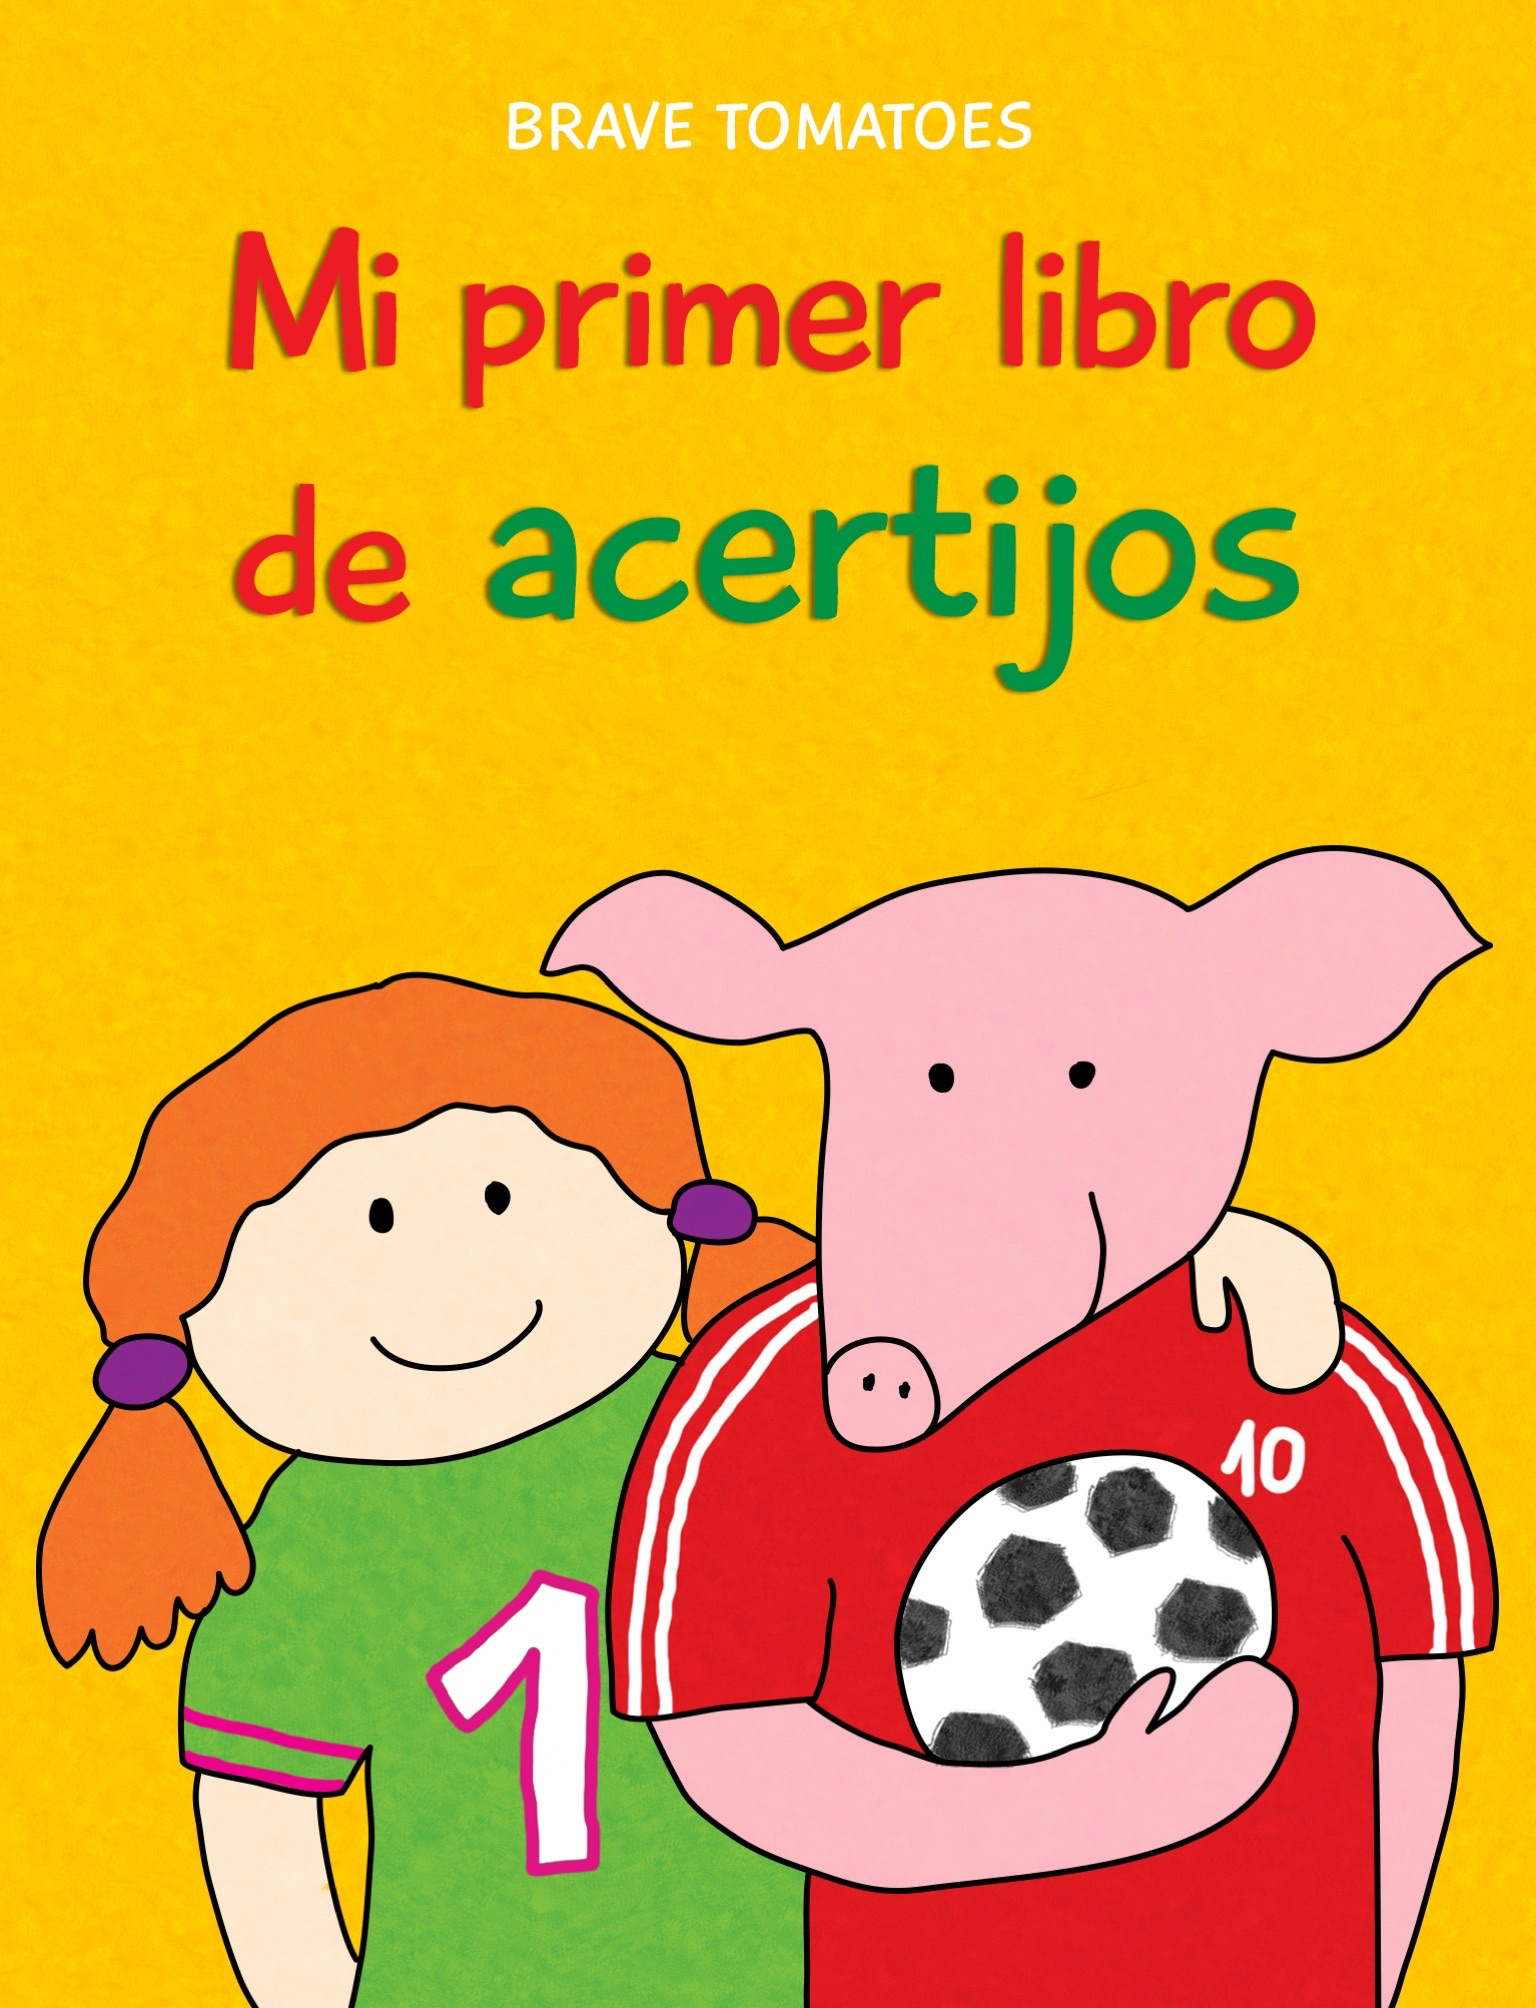 Copiar Libros De Ibooks A Pc 1536x2008sr Jpg